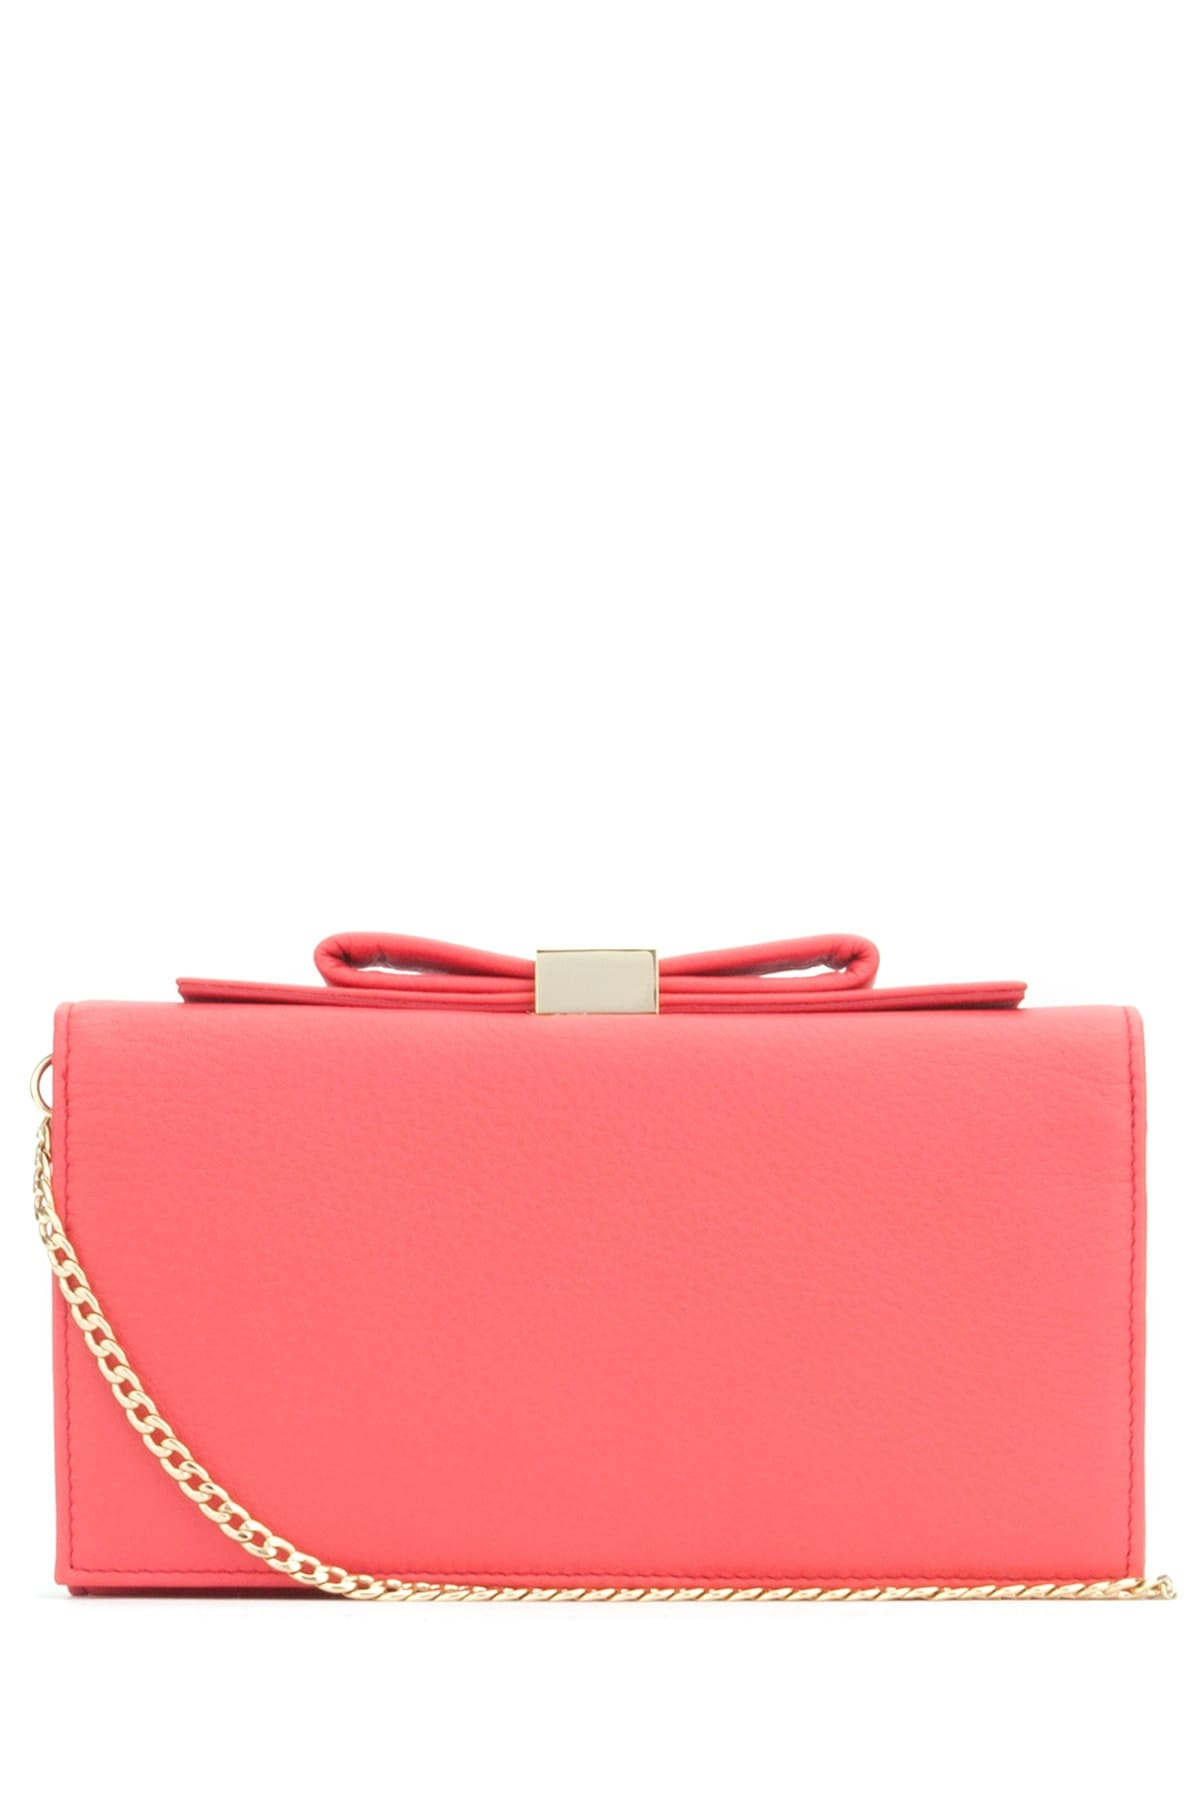 Get Quotations See By Chlo Eacute Pink Leather Handbags